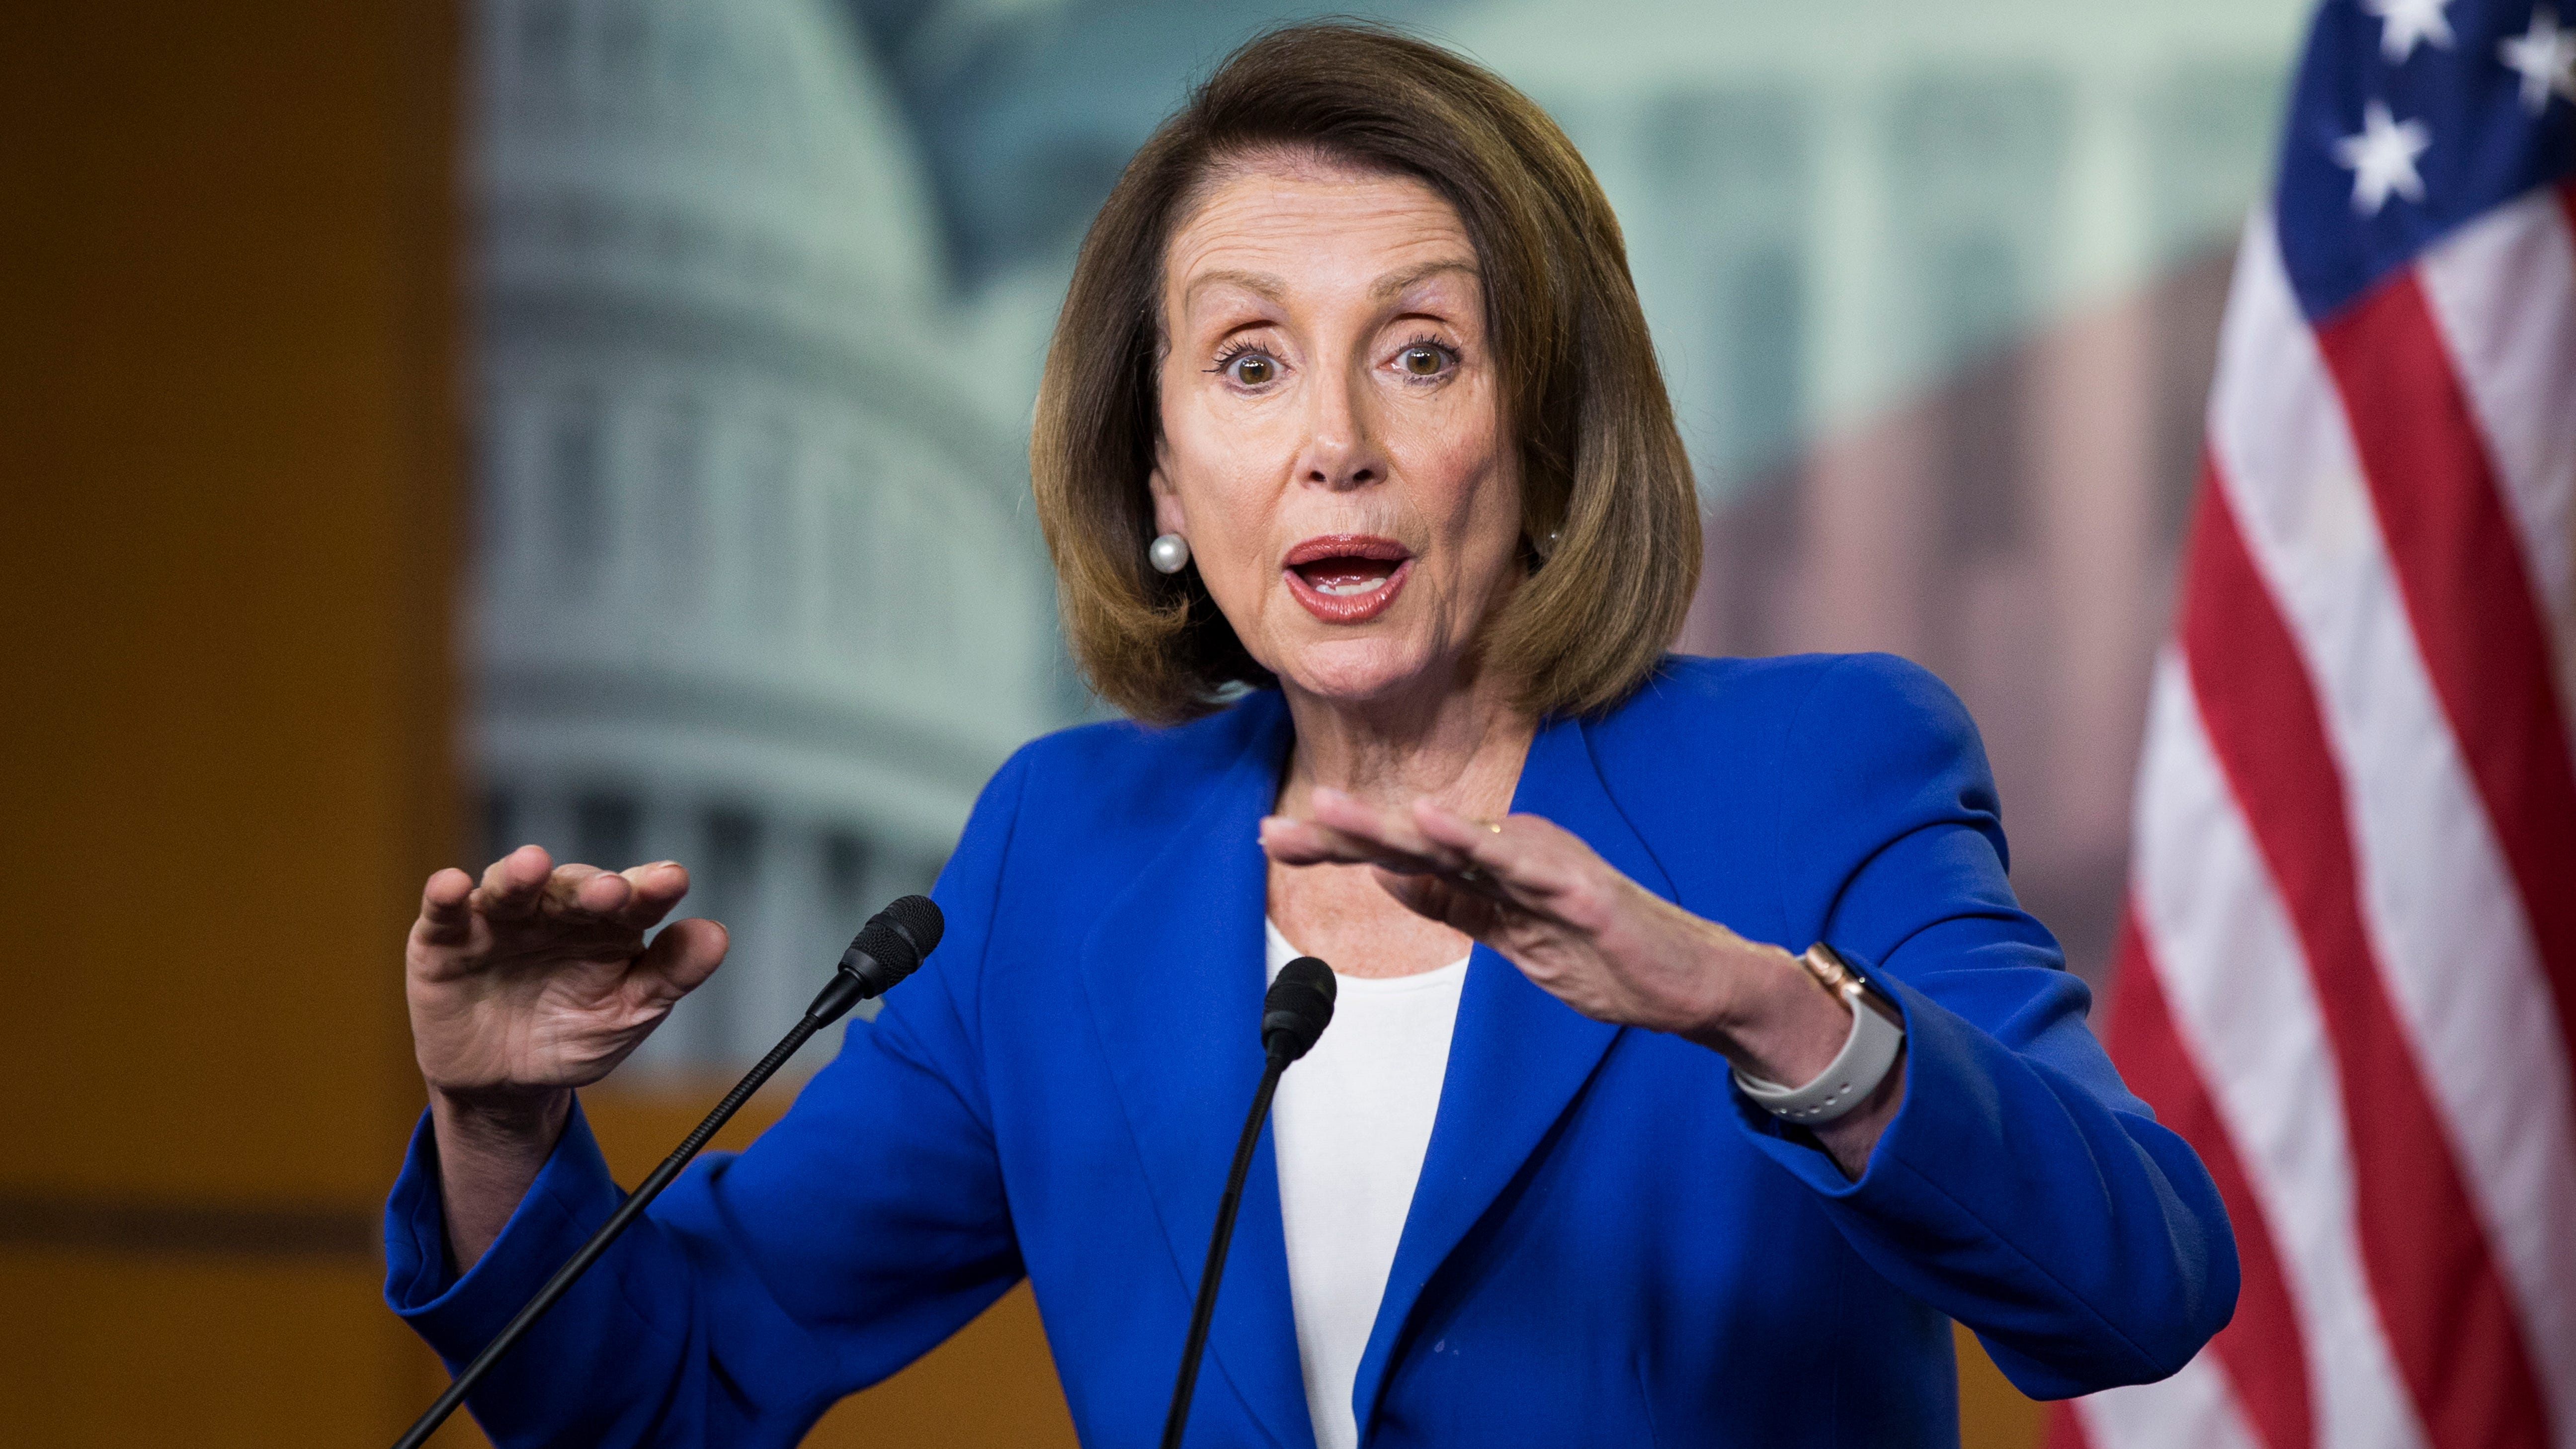 House Speaker Nancy Pelosi holds a news conference on Capitol Hill in Washington, Jan. 31, 2019.